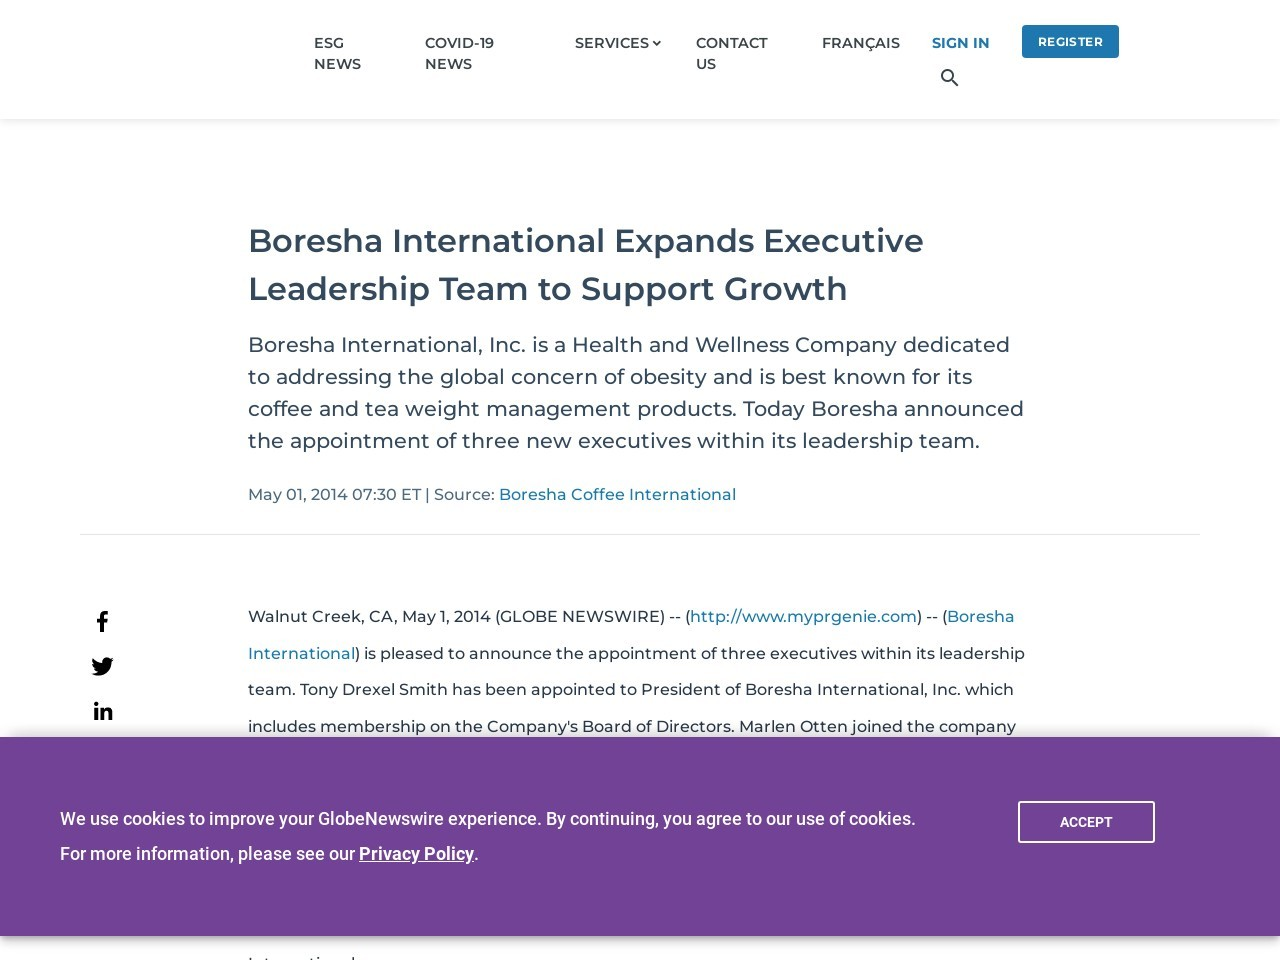 Boresha International Expands Executive Leadership Team to Support Growth